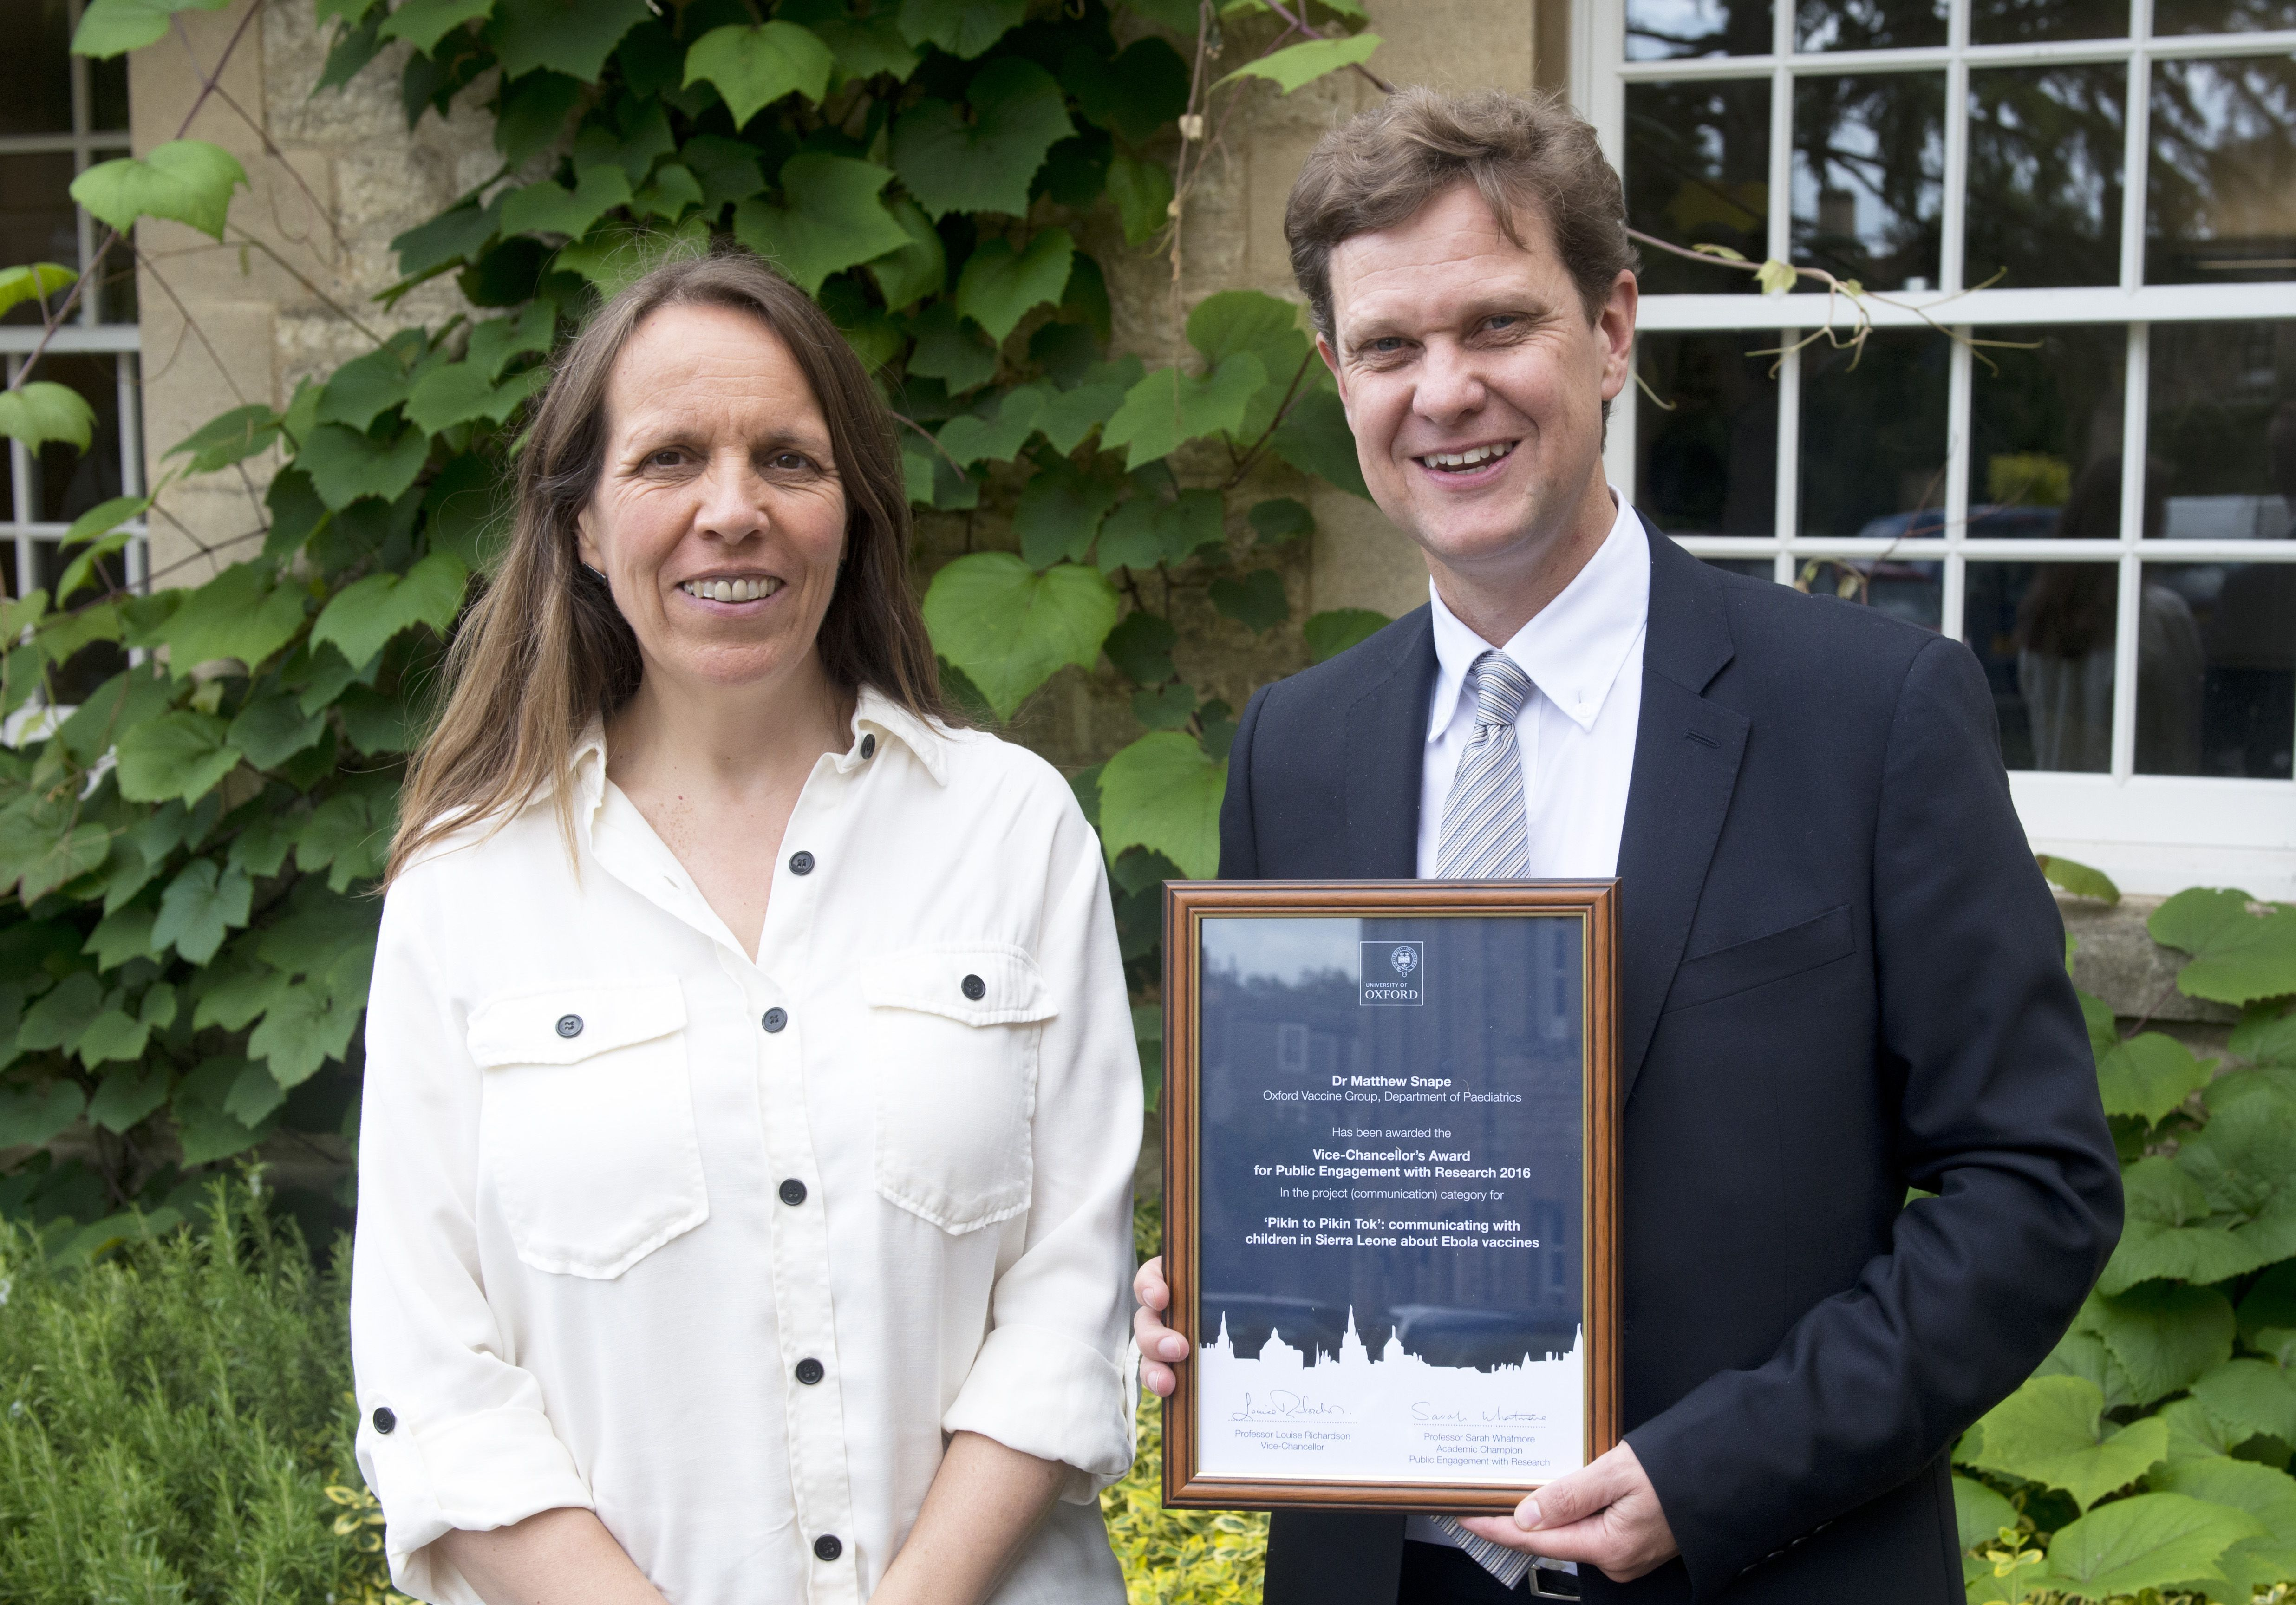 Dr Matthew Snape wins prize for engaging the public